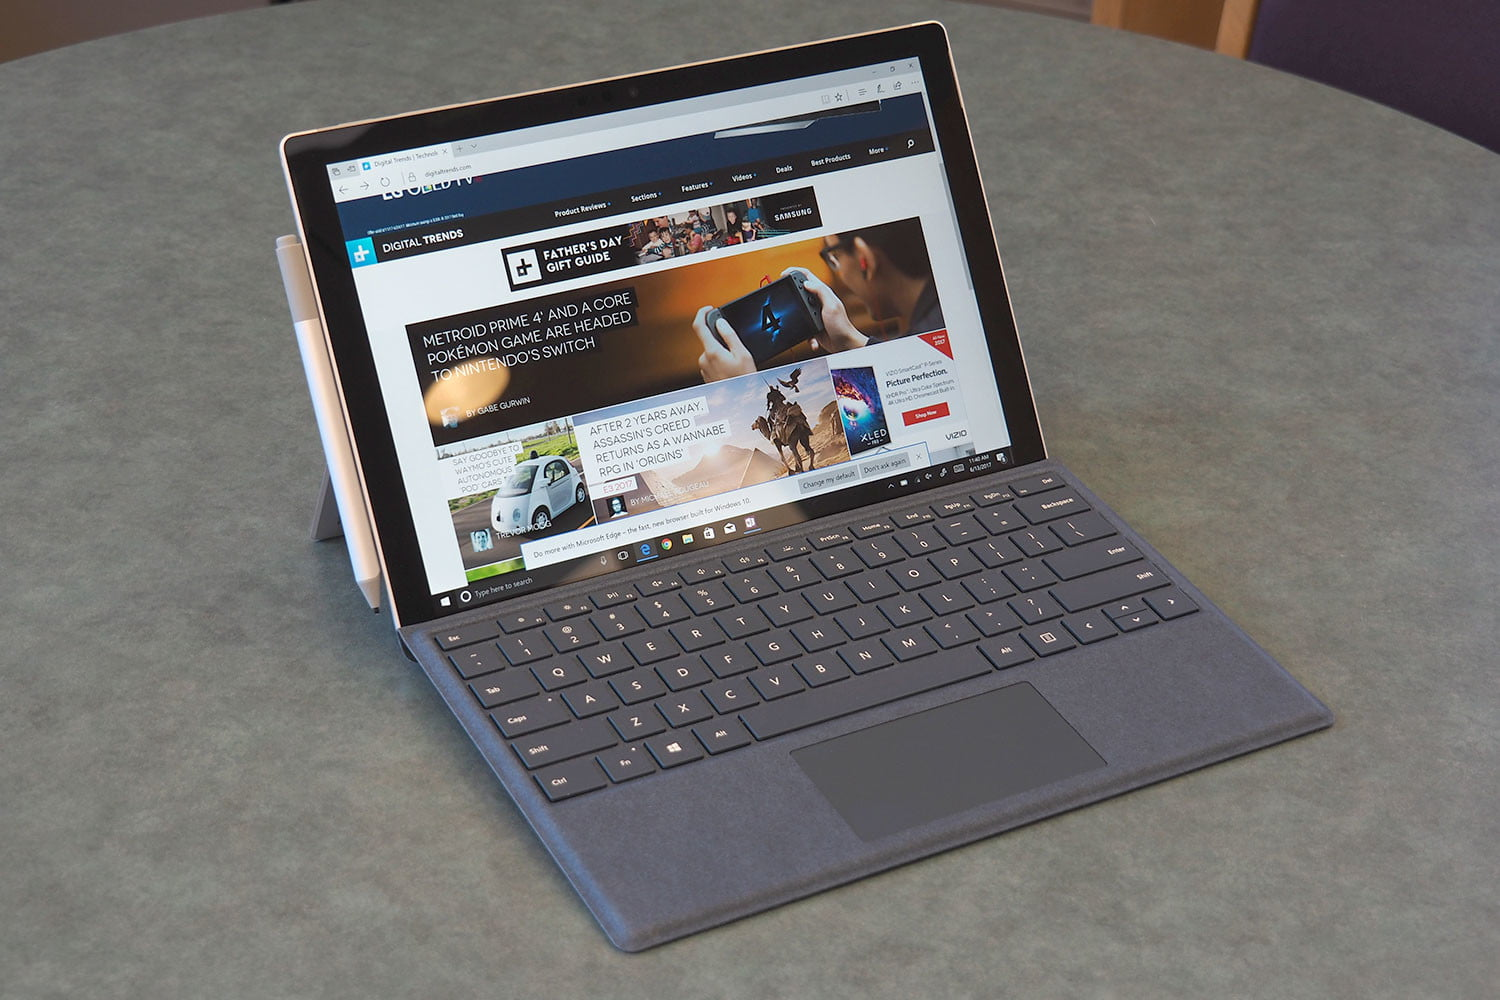 Lenovo Thinkpad X1 Tablet Versus The Microsoft Surface Pro Digital 4 Core I7 8gb 256gb Trends